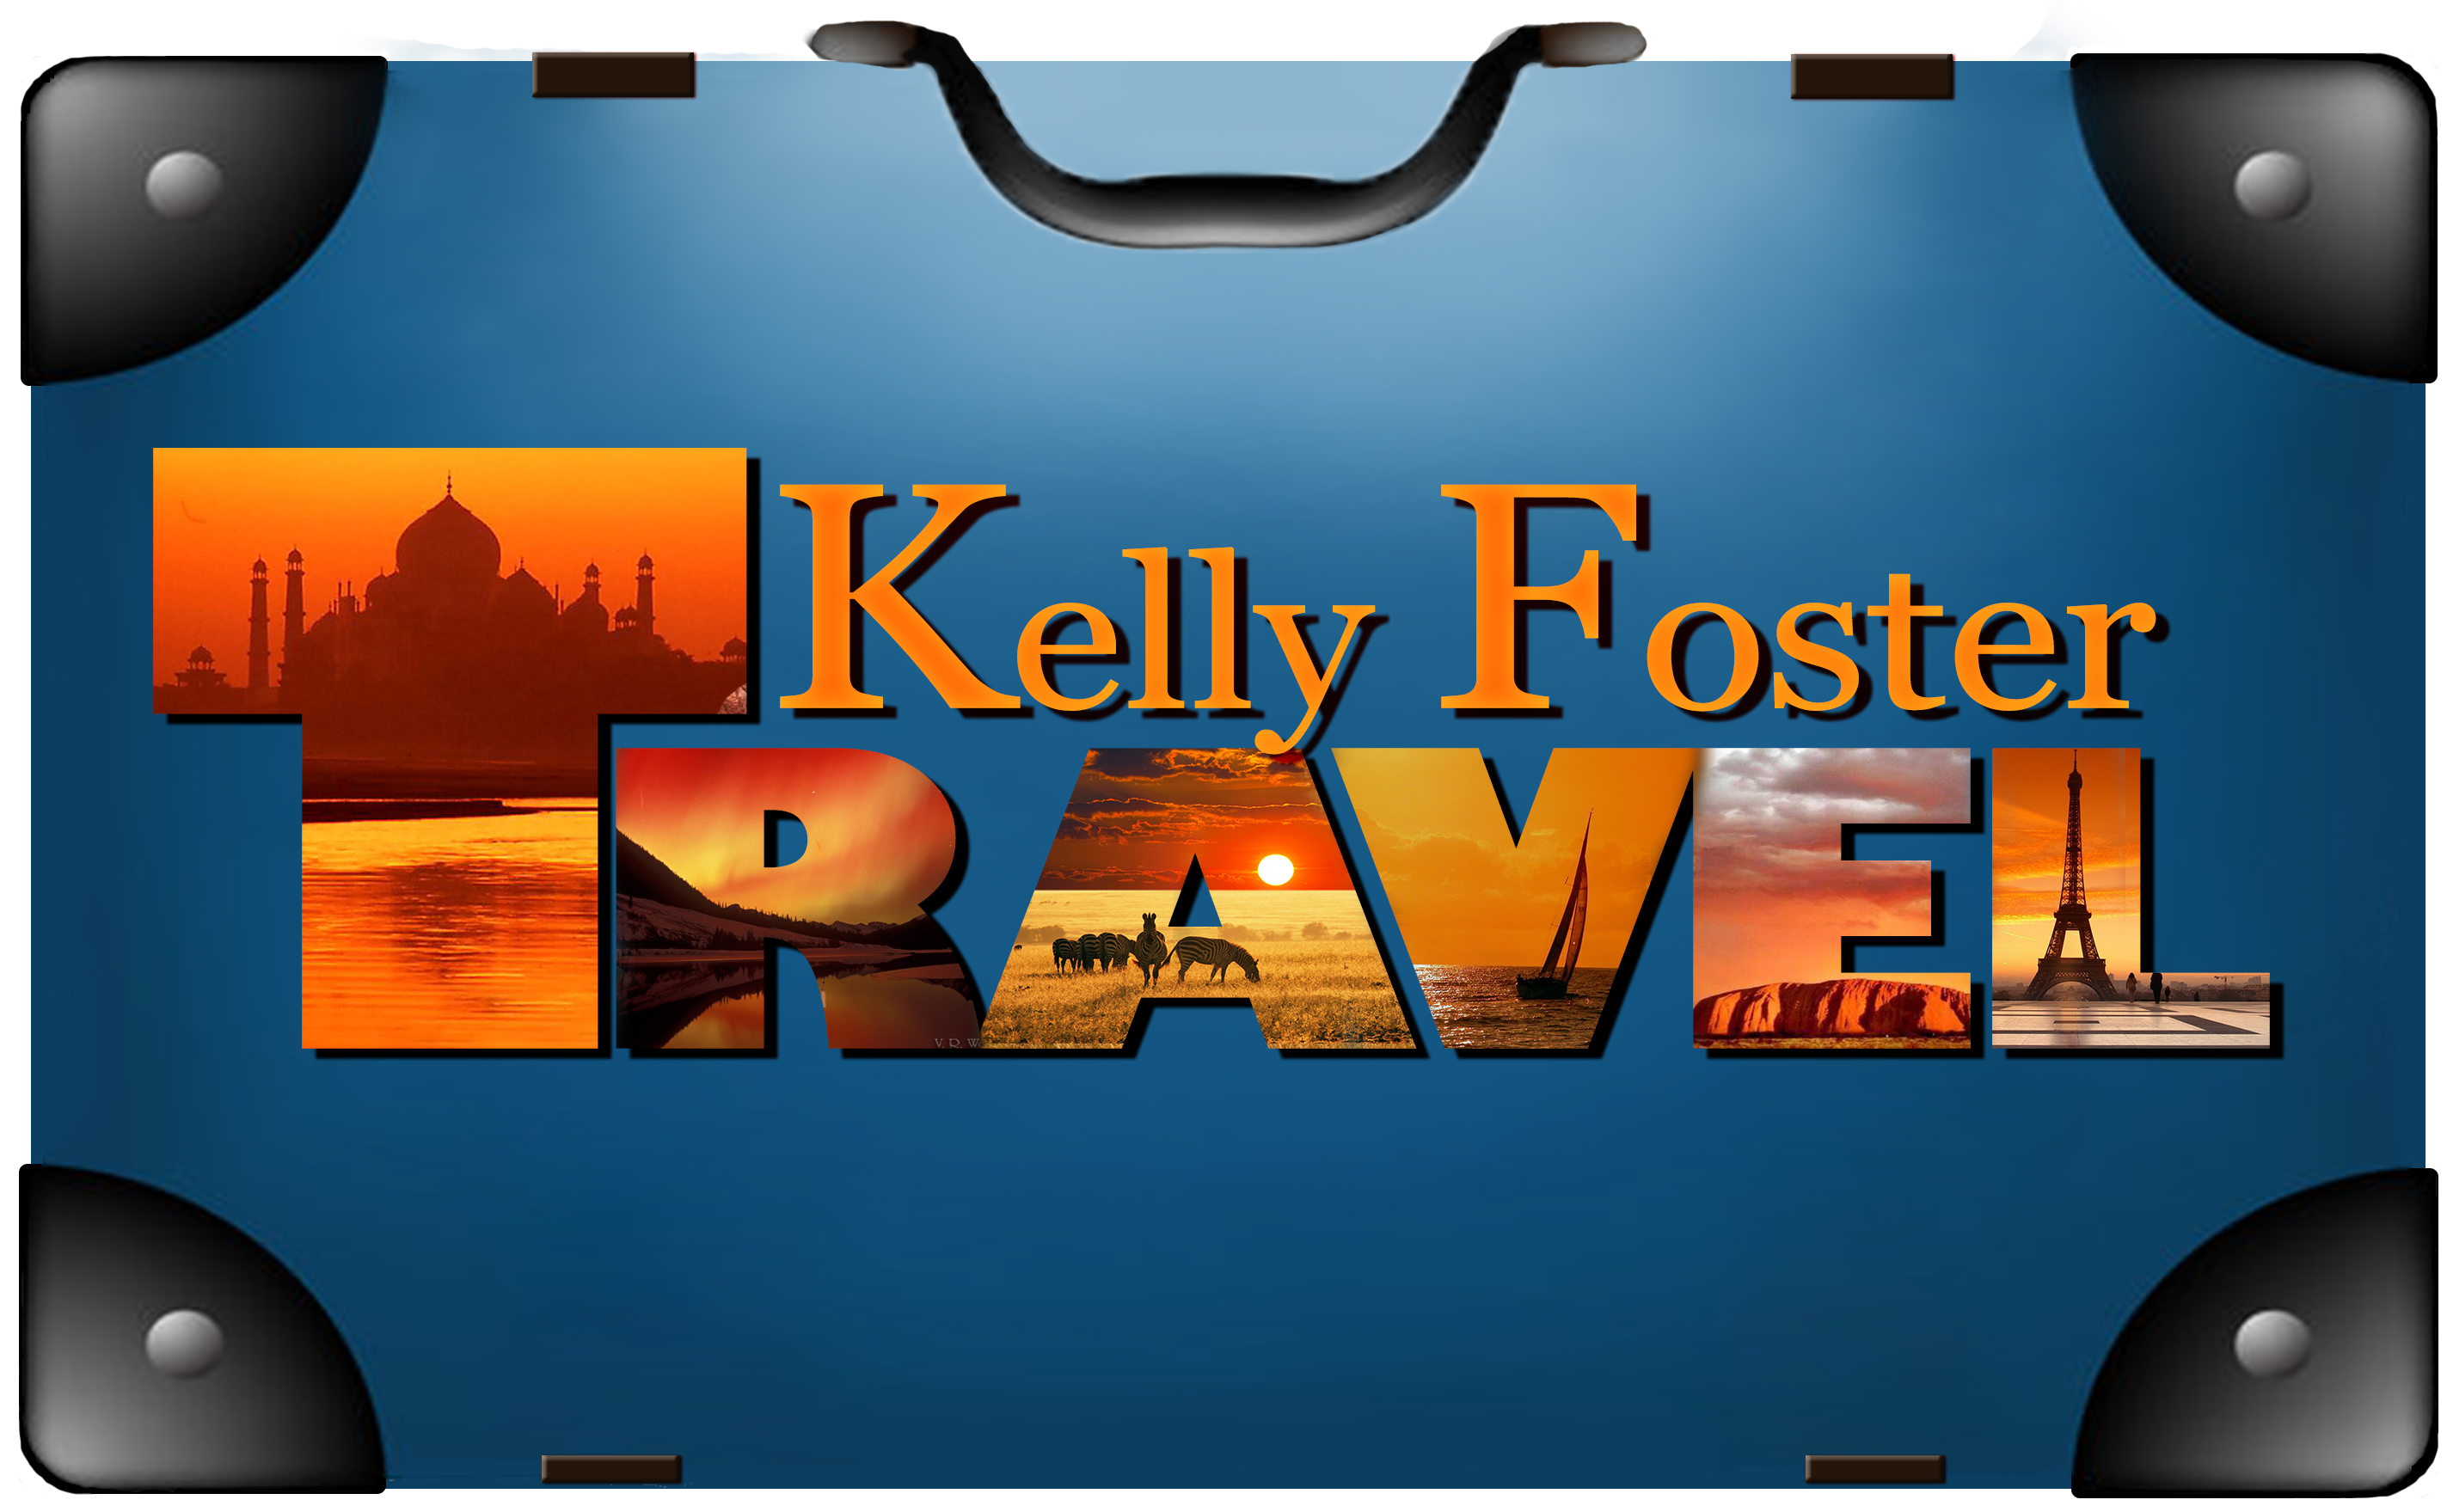 Kelly Foster TPI Travel